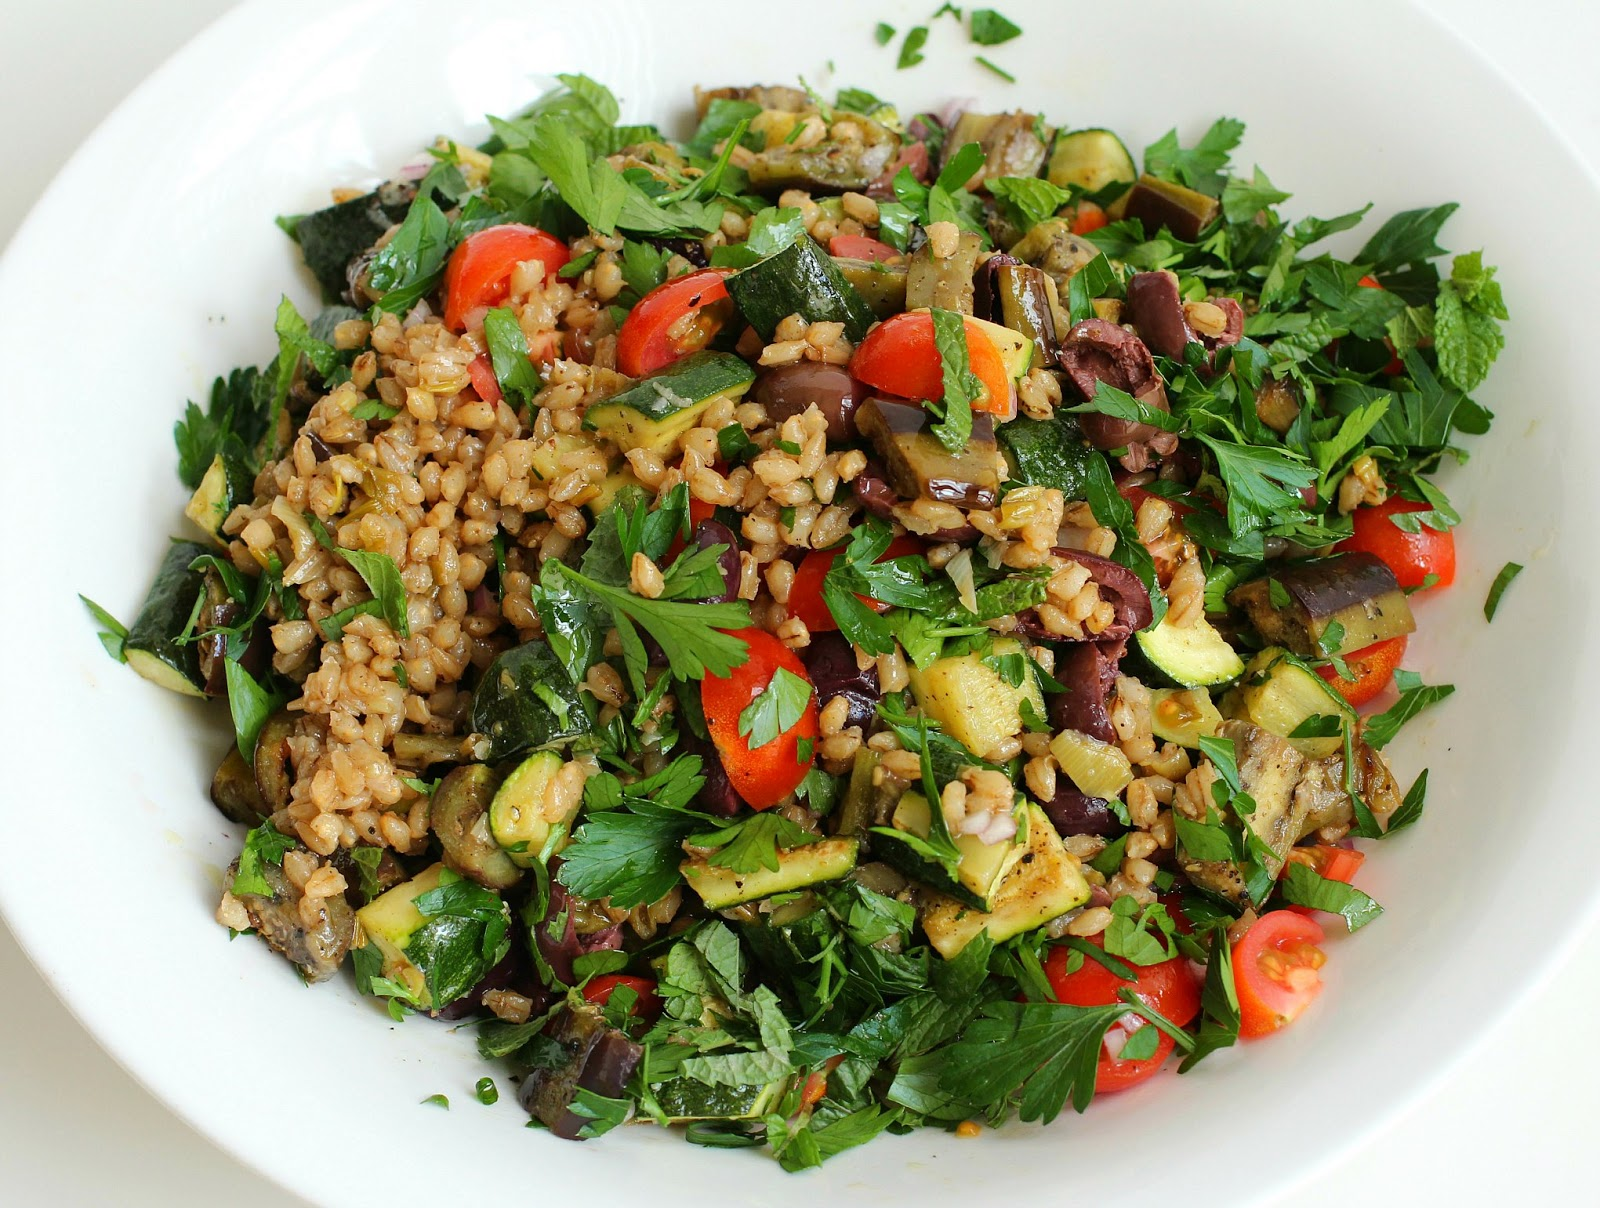 Milk and Honey: Mediterranean Eggplant and Barley Salad